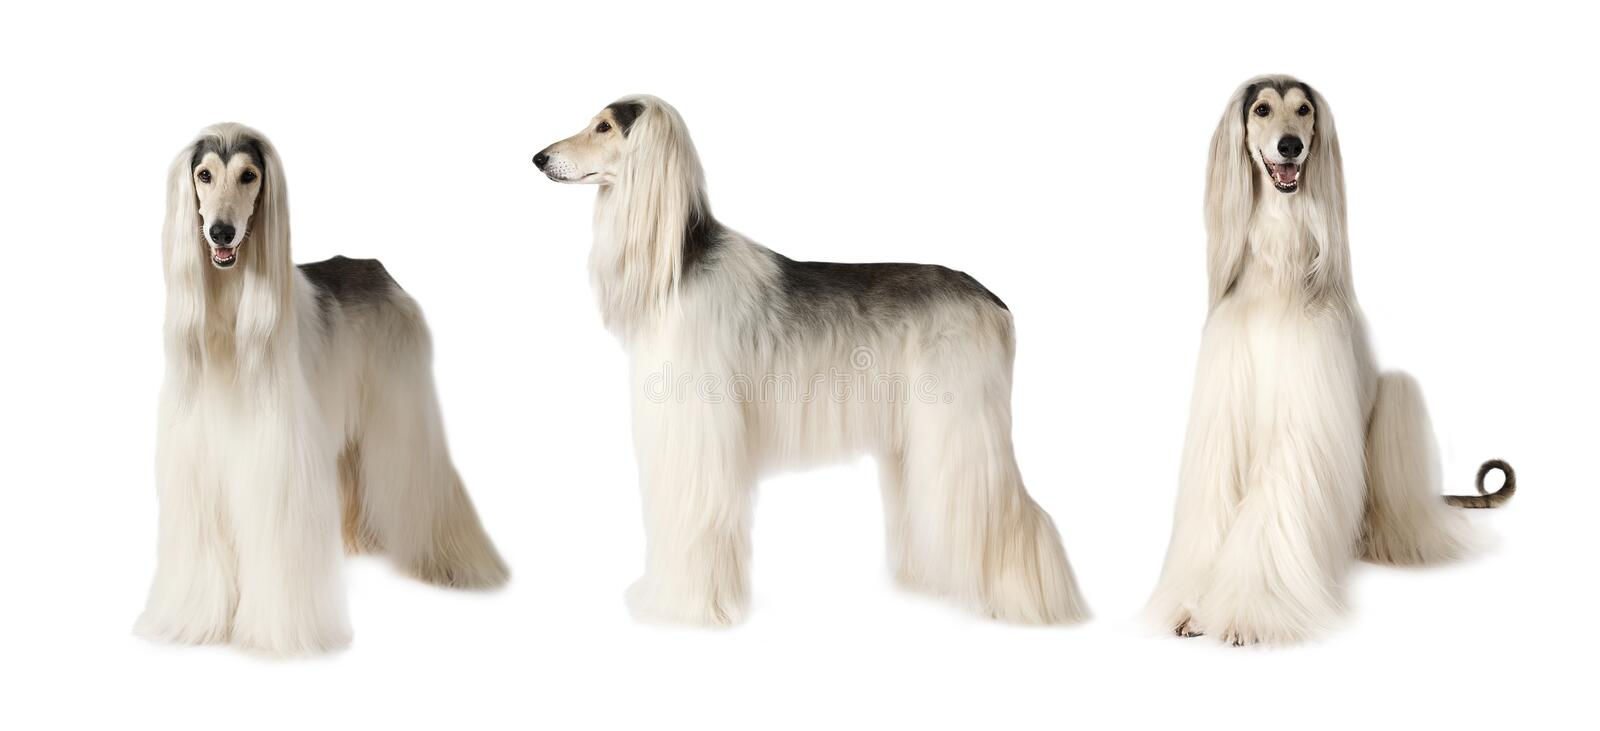 Afghan hound dog over white. Photo collage of white Afghan hound dog, studio shot on white background royalty free stock photography